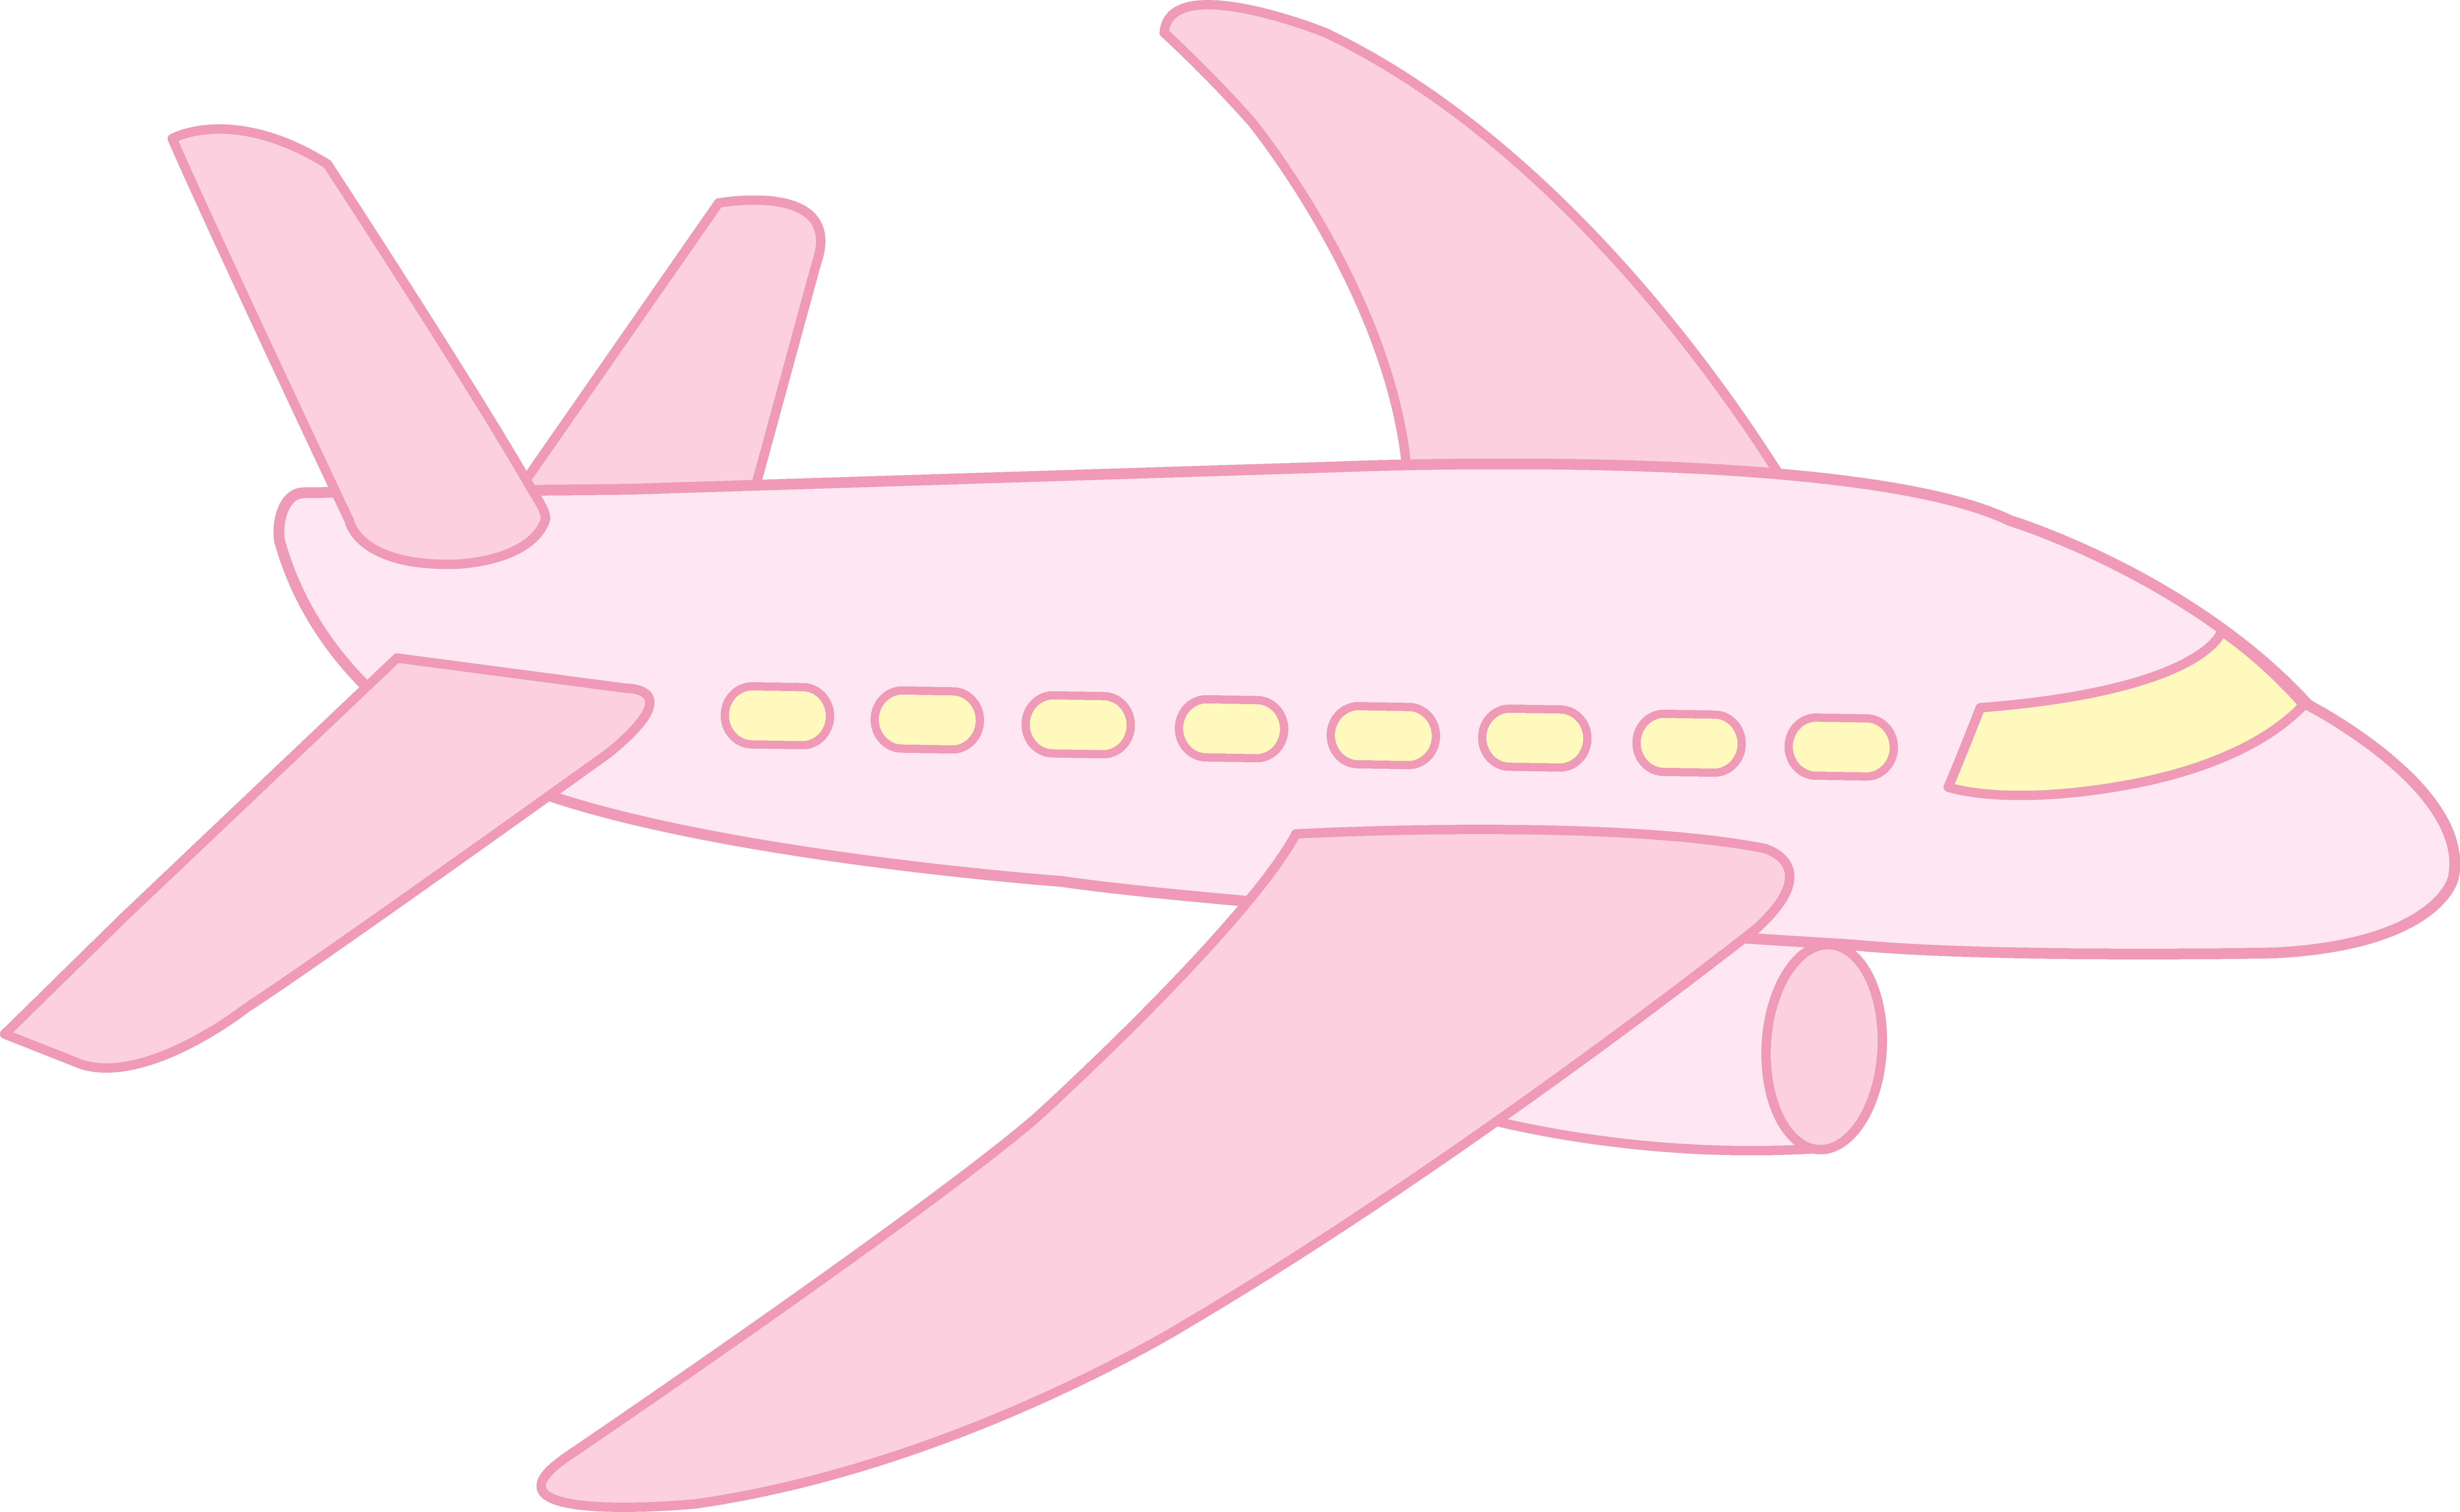 Wildcat clipart cute. Pink airplane free clip